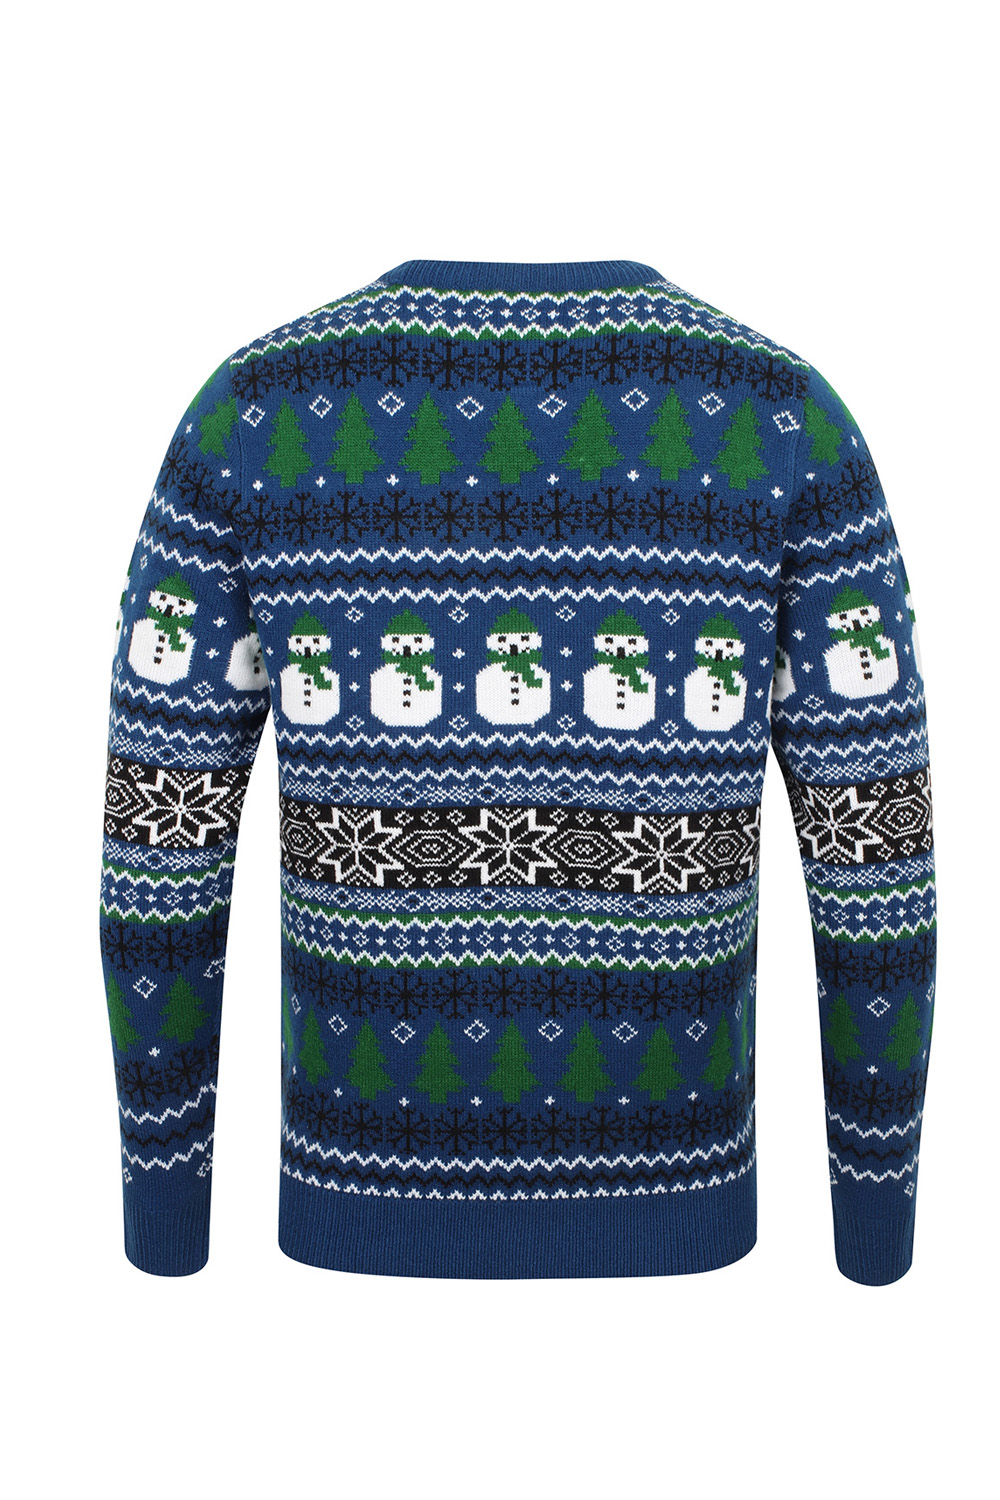 Seasons-Greetings-Childrens-Novelty-Christmas-Jumpers-Festive-Winter-Sweaters thumbnail 14